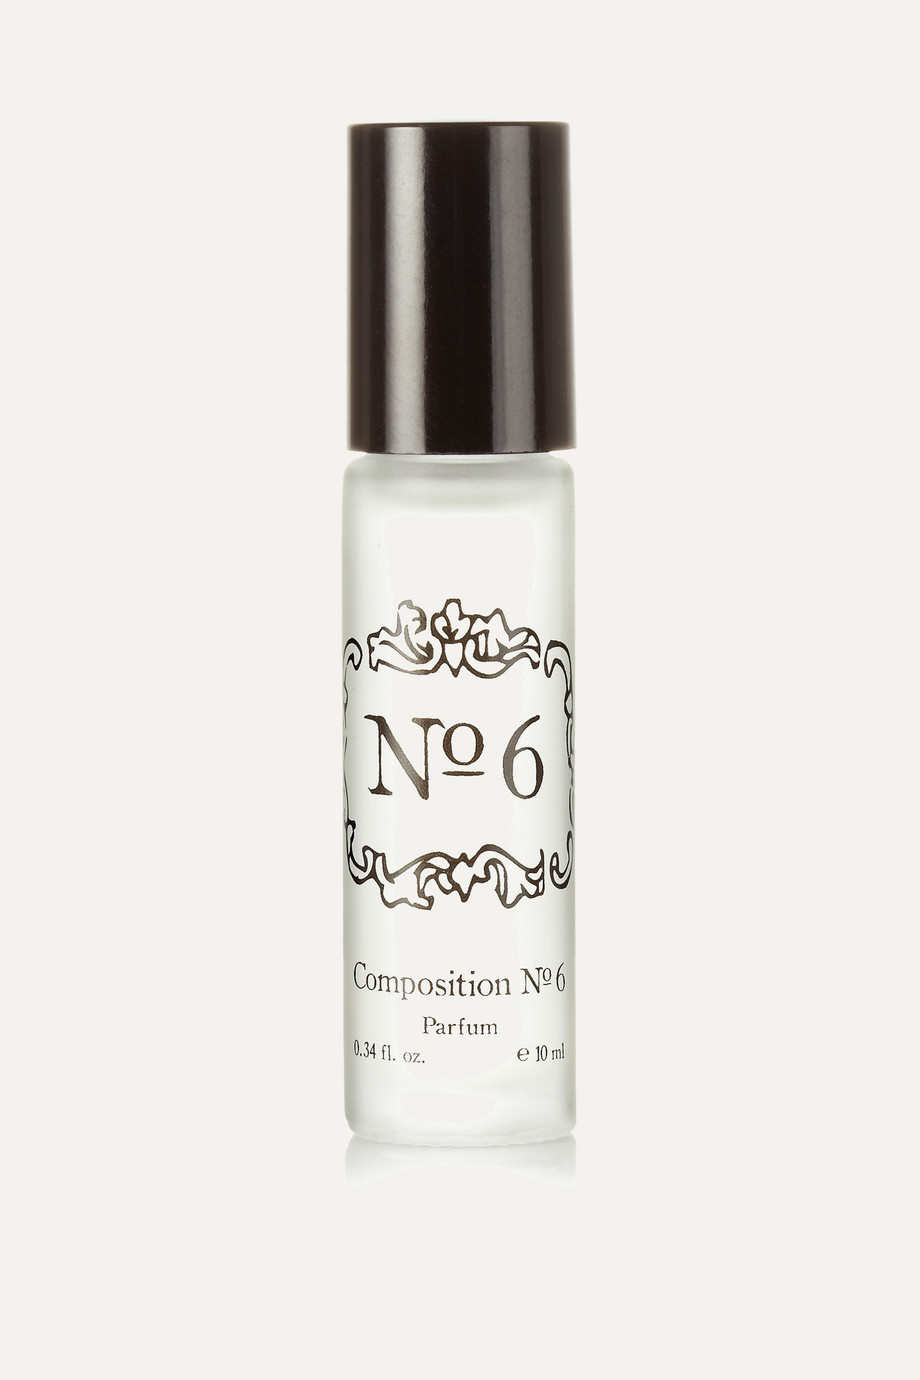 Composition No. 6 Roll-On Parfum, 10ml, by Joya